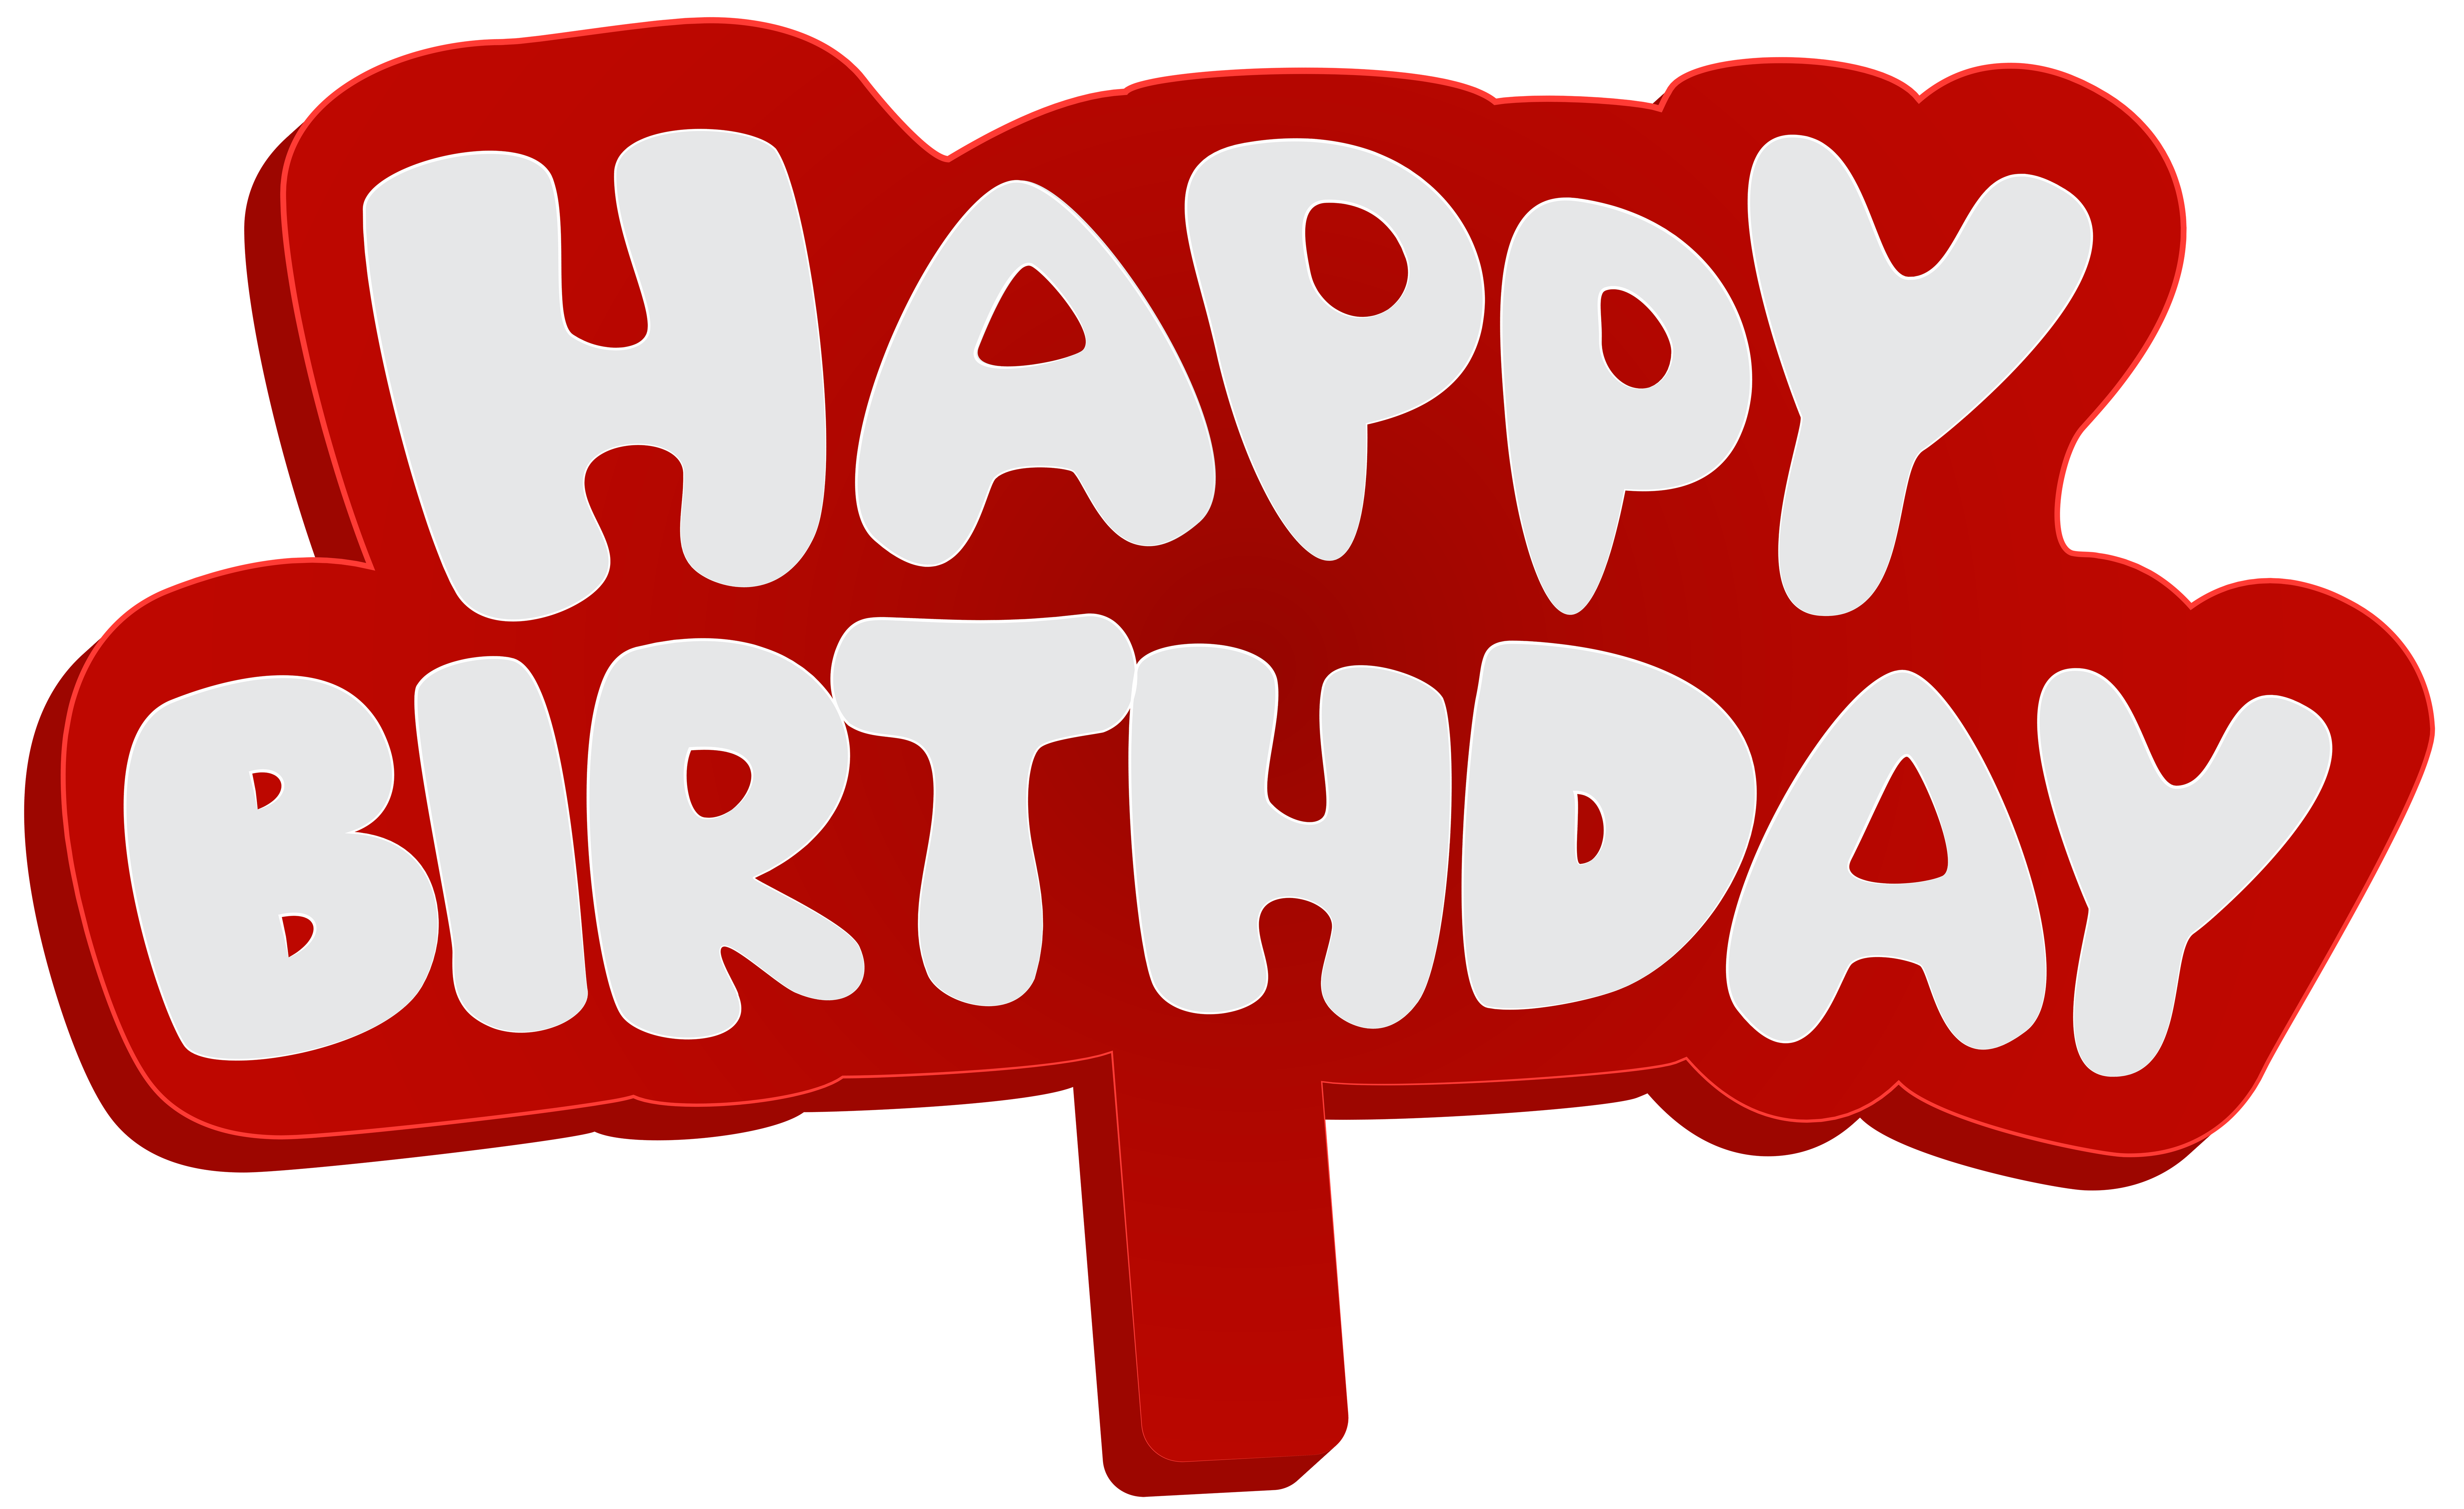 Happy Birthday PNG images free download